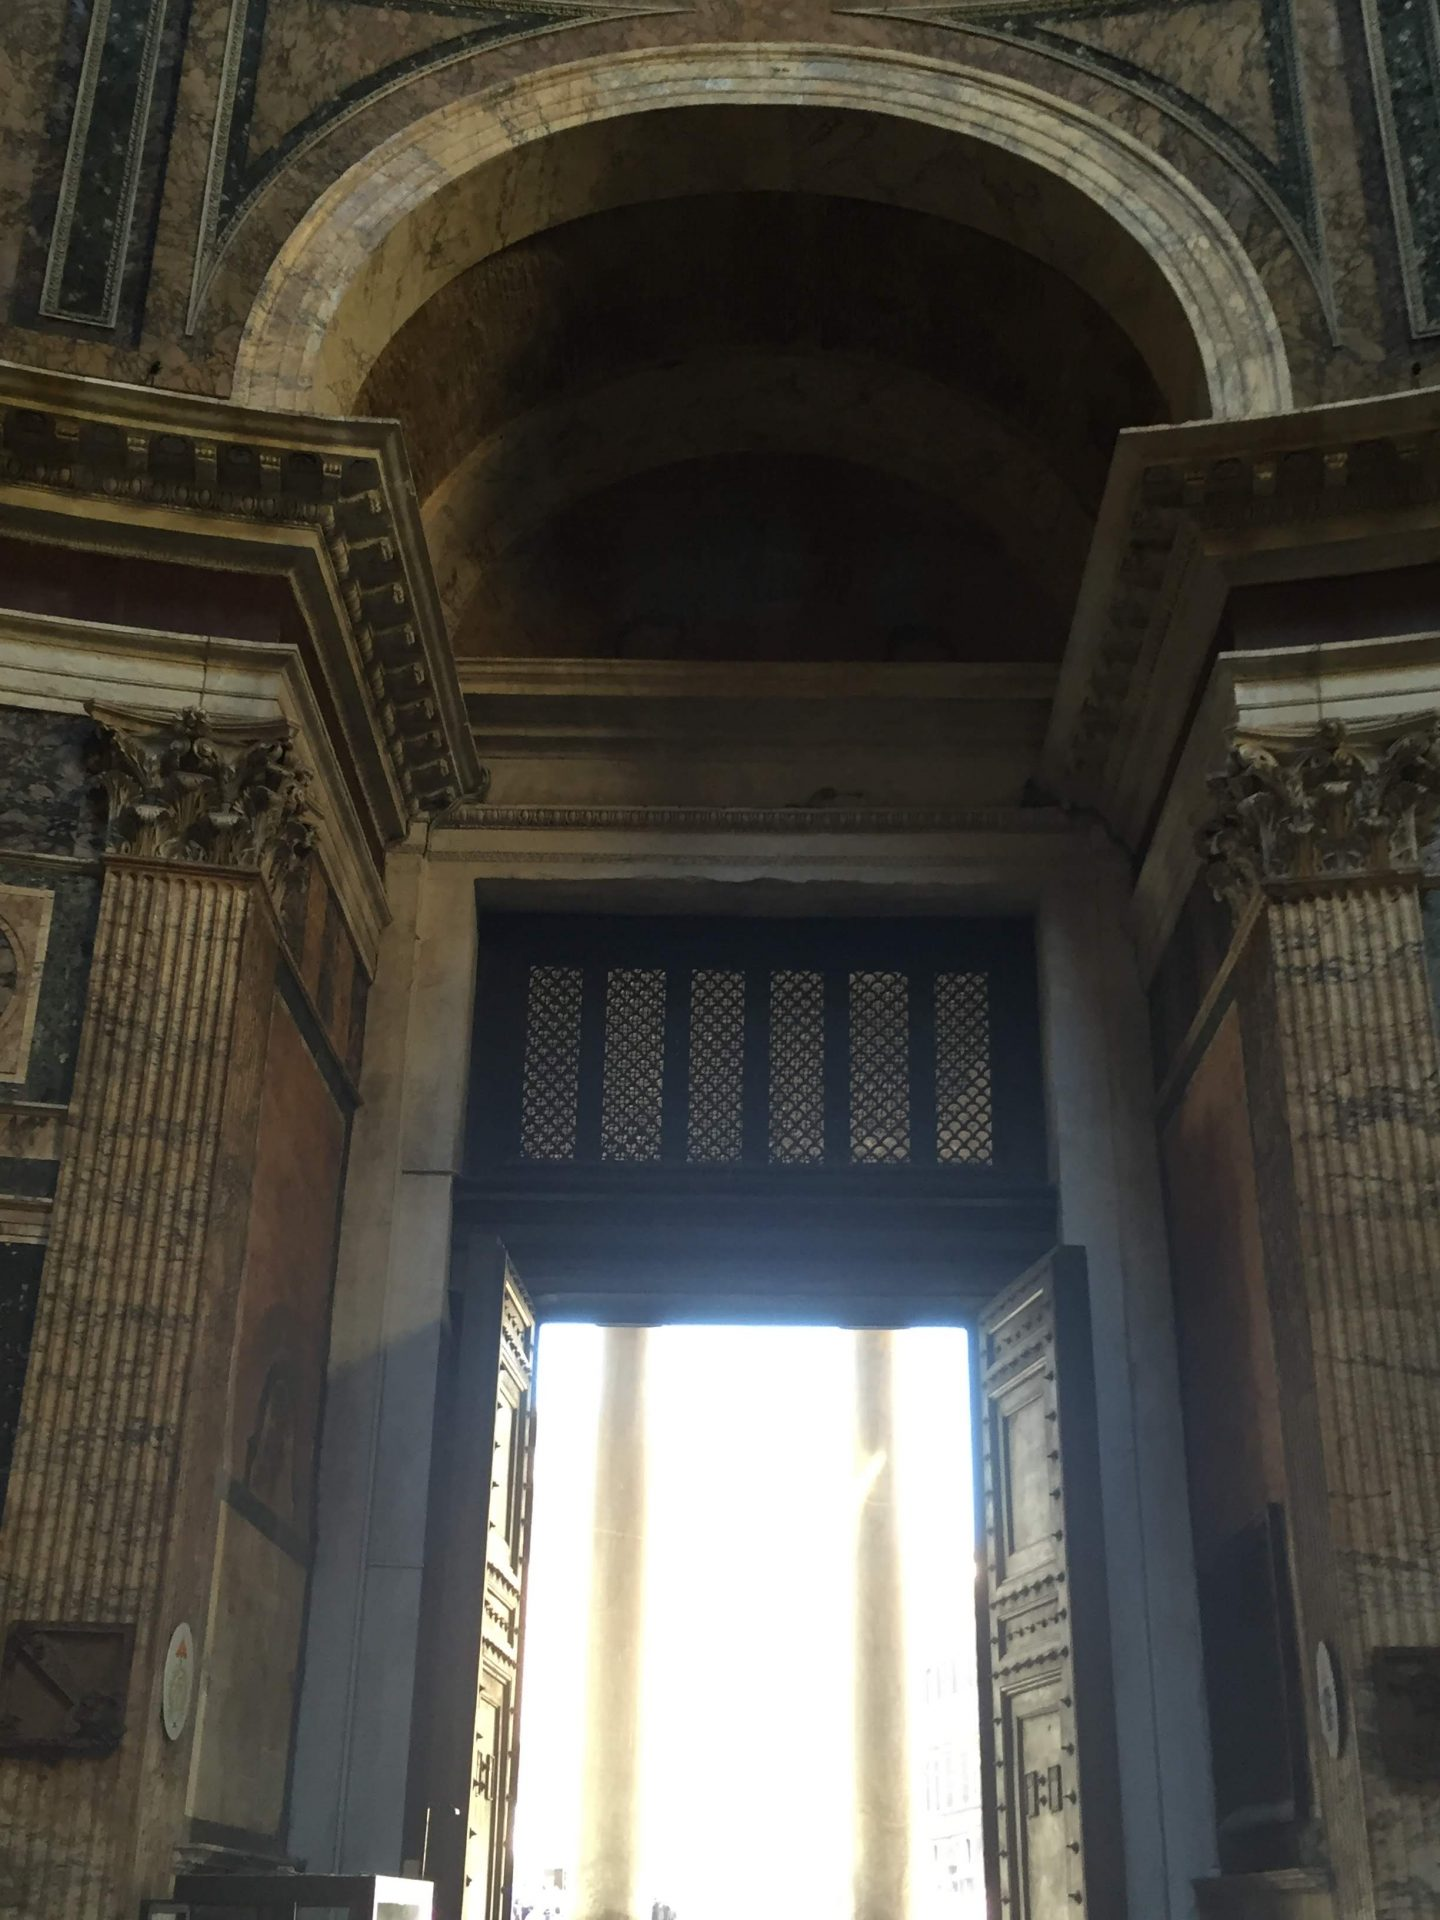 Inside the Pantheon, Rome near the Colosseum